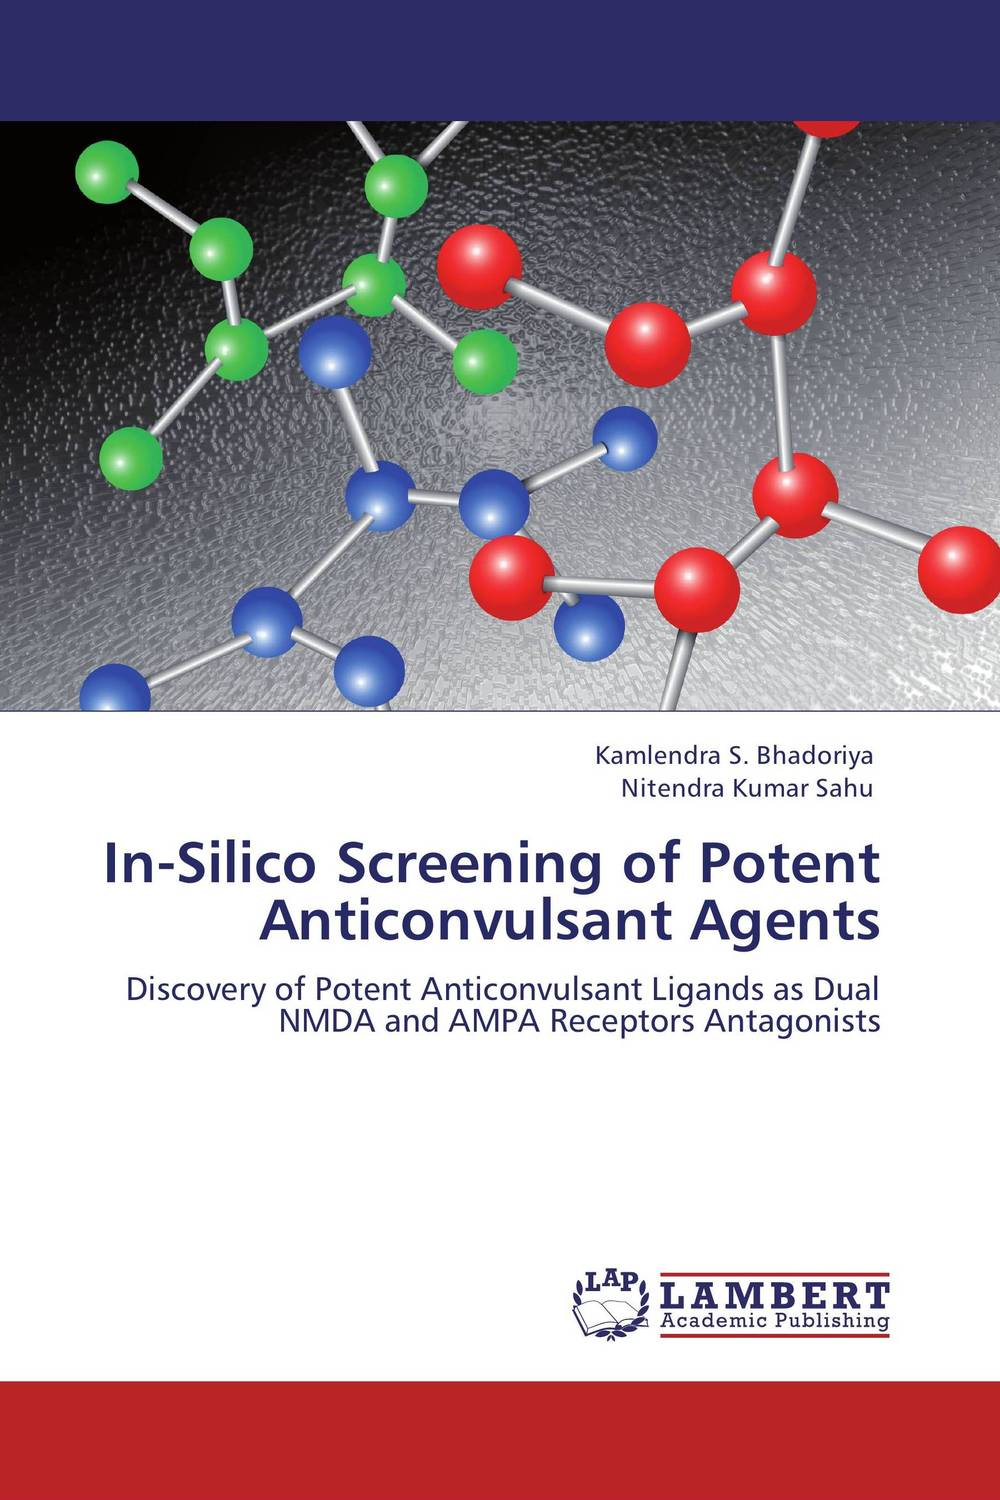 In-Silico Screening of Potent Anticonvulsant Agents stem bromelain in silico analysis for stability and modification